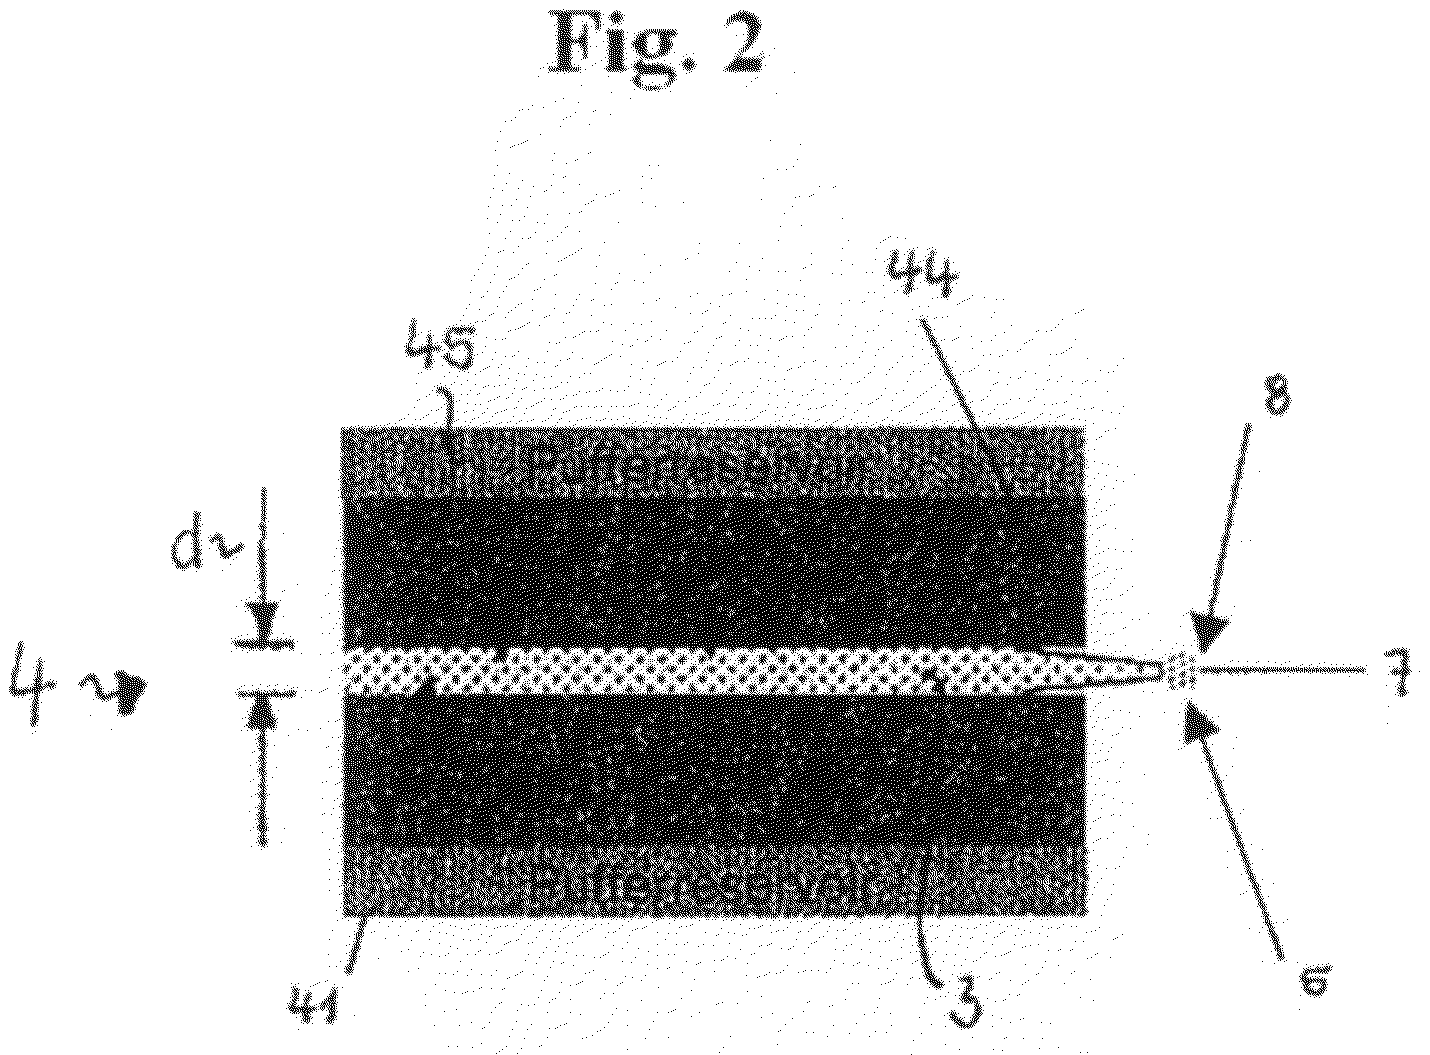 US7868146B2 Method and device for producing a thread from